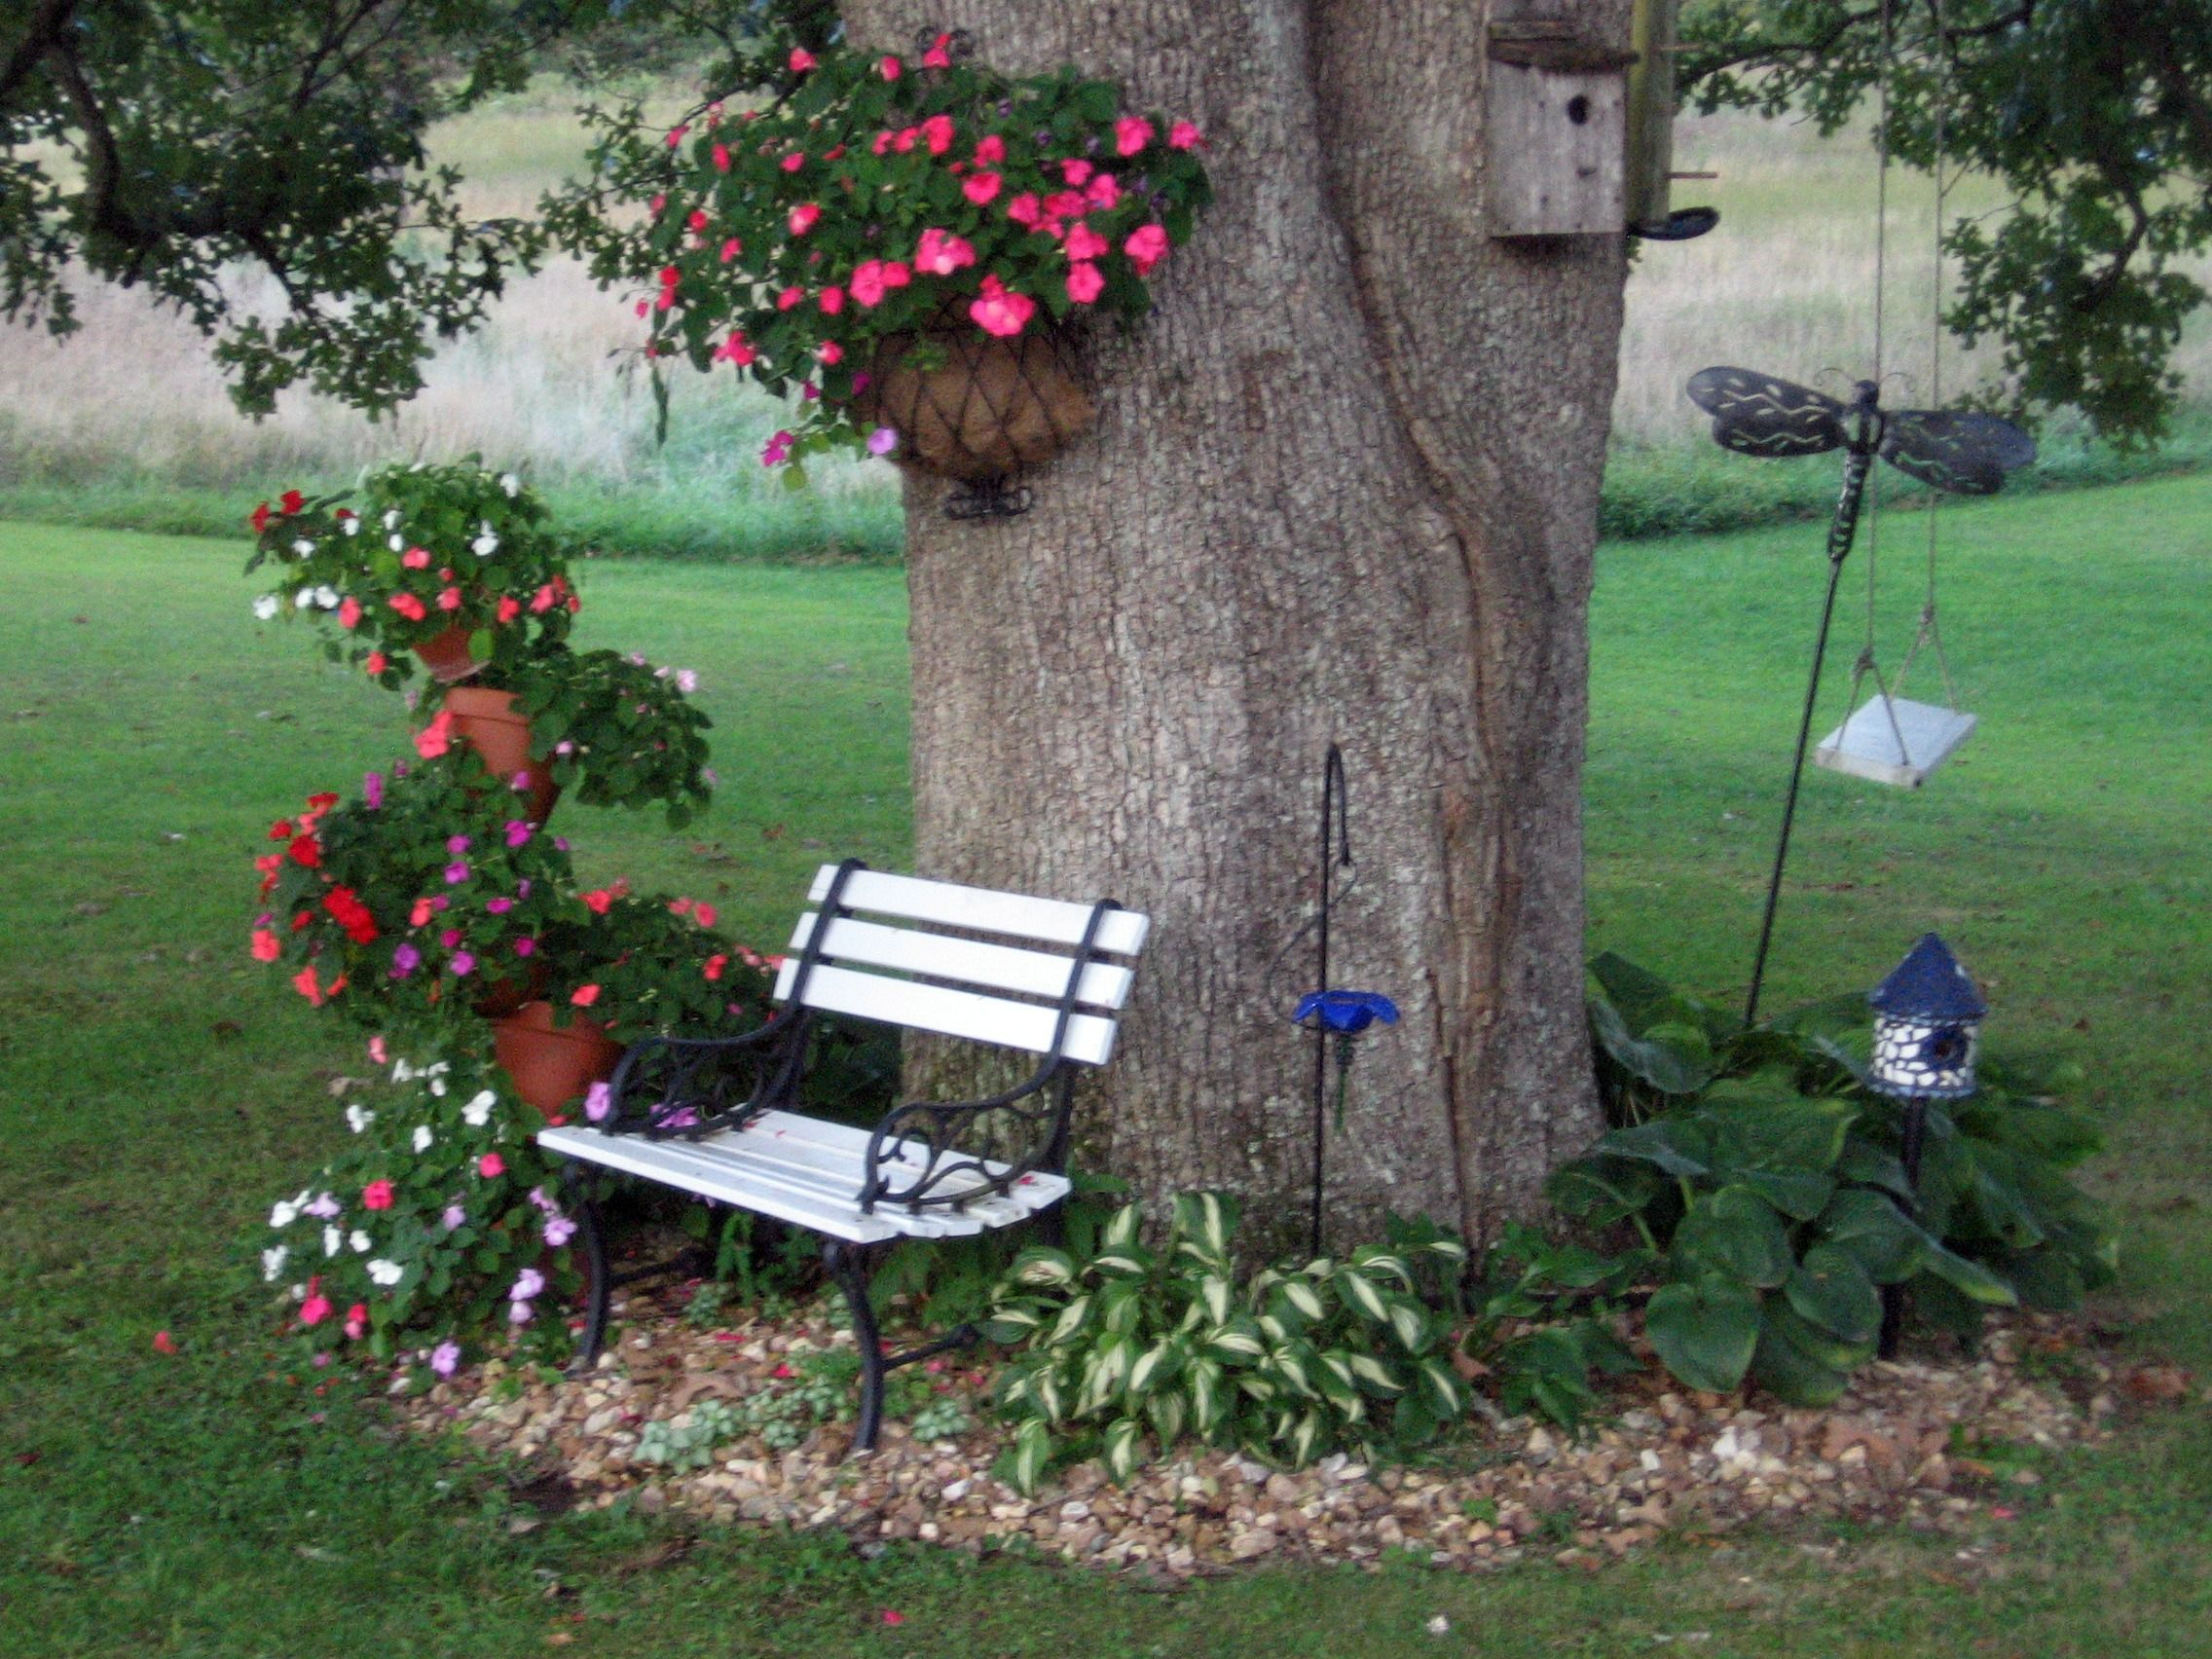 10 ideas originales para jardines trees the tree and flower - Ideas de jardines ...